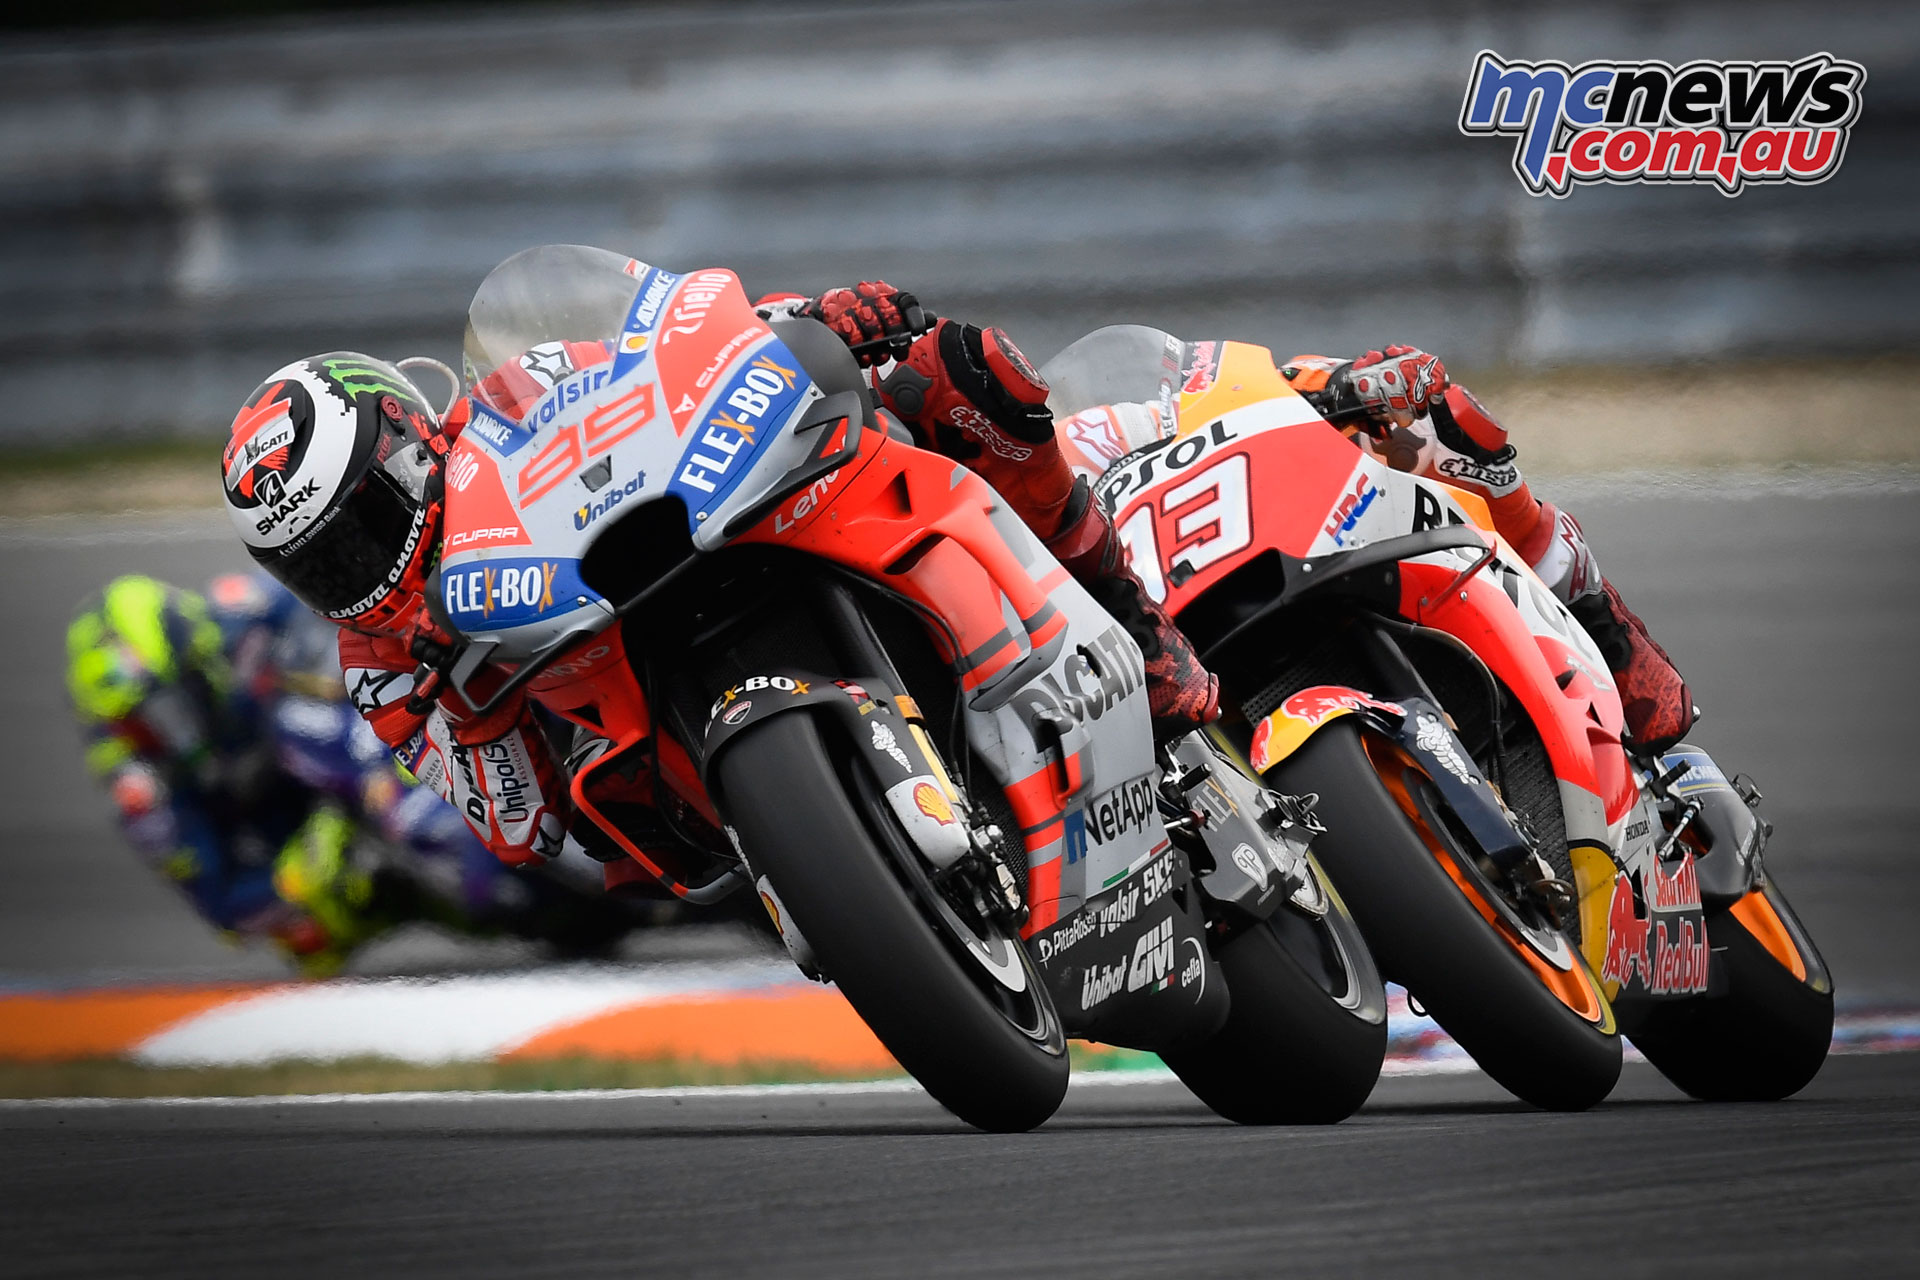 Lorenzo and Marquez battling it out